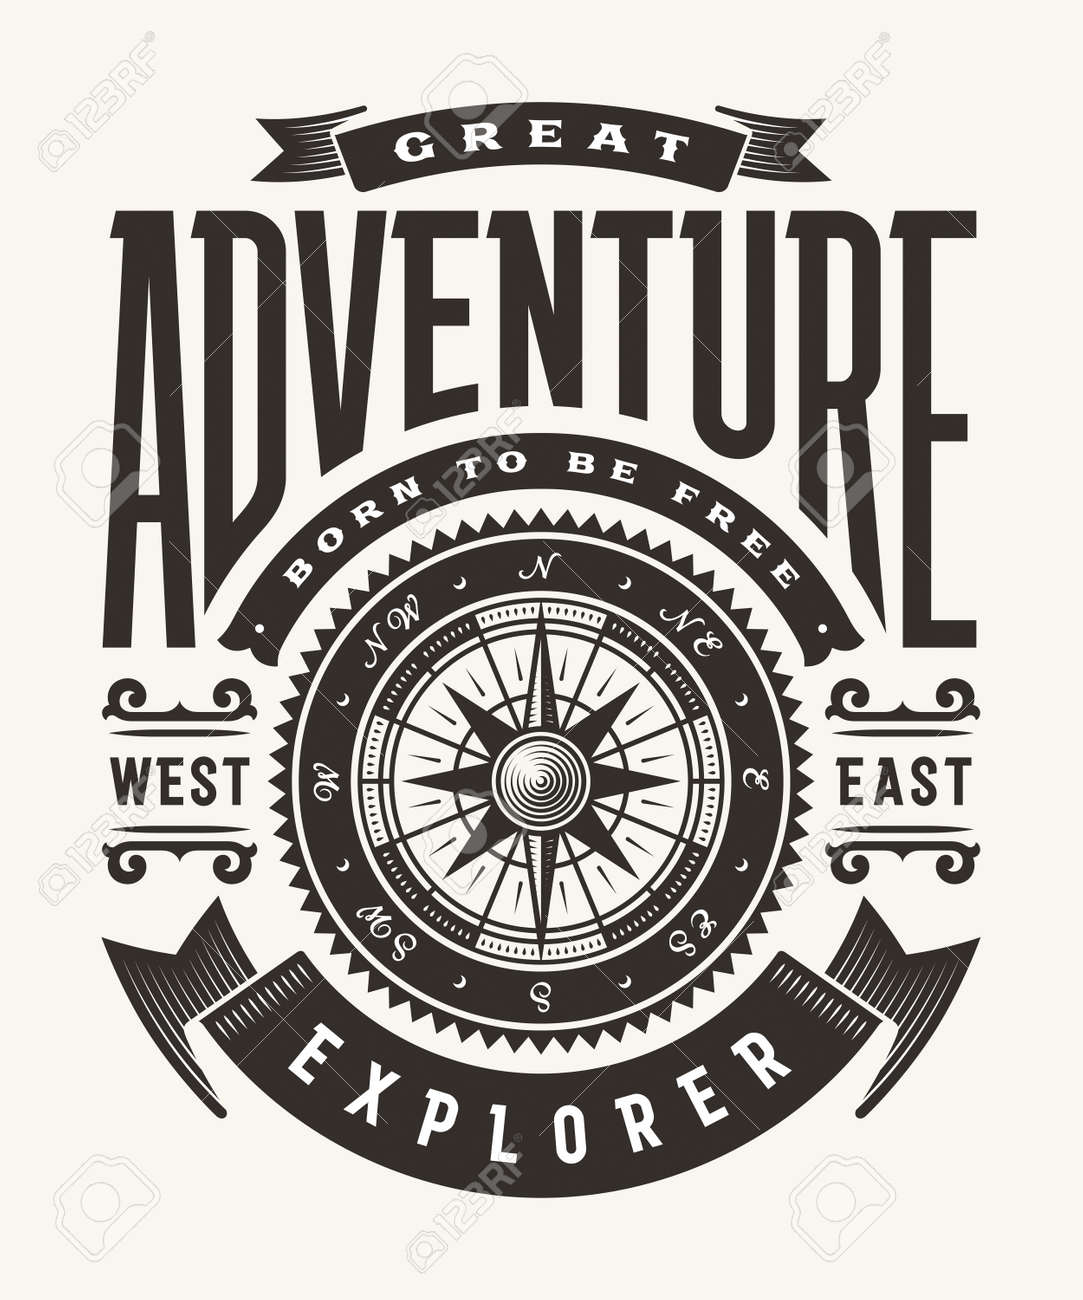 Vintage Great Adventure Typography (One Color) - 105520356